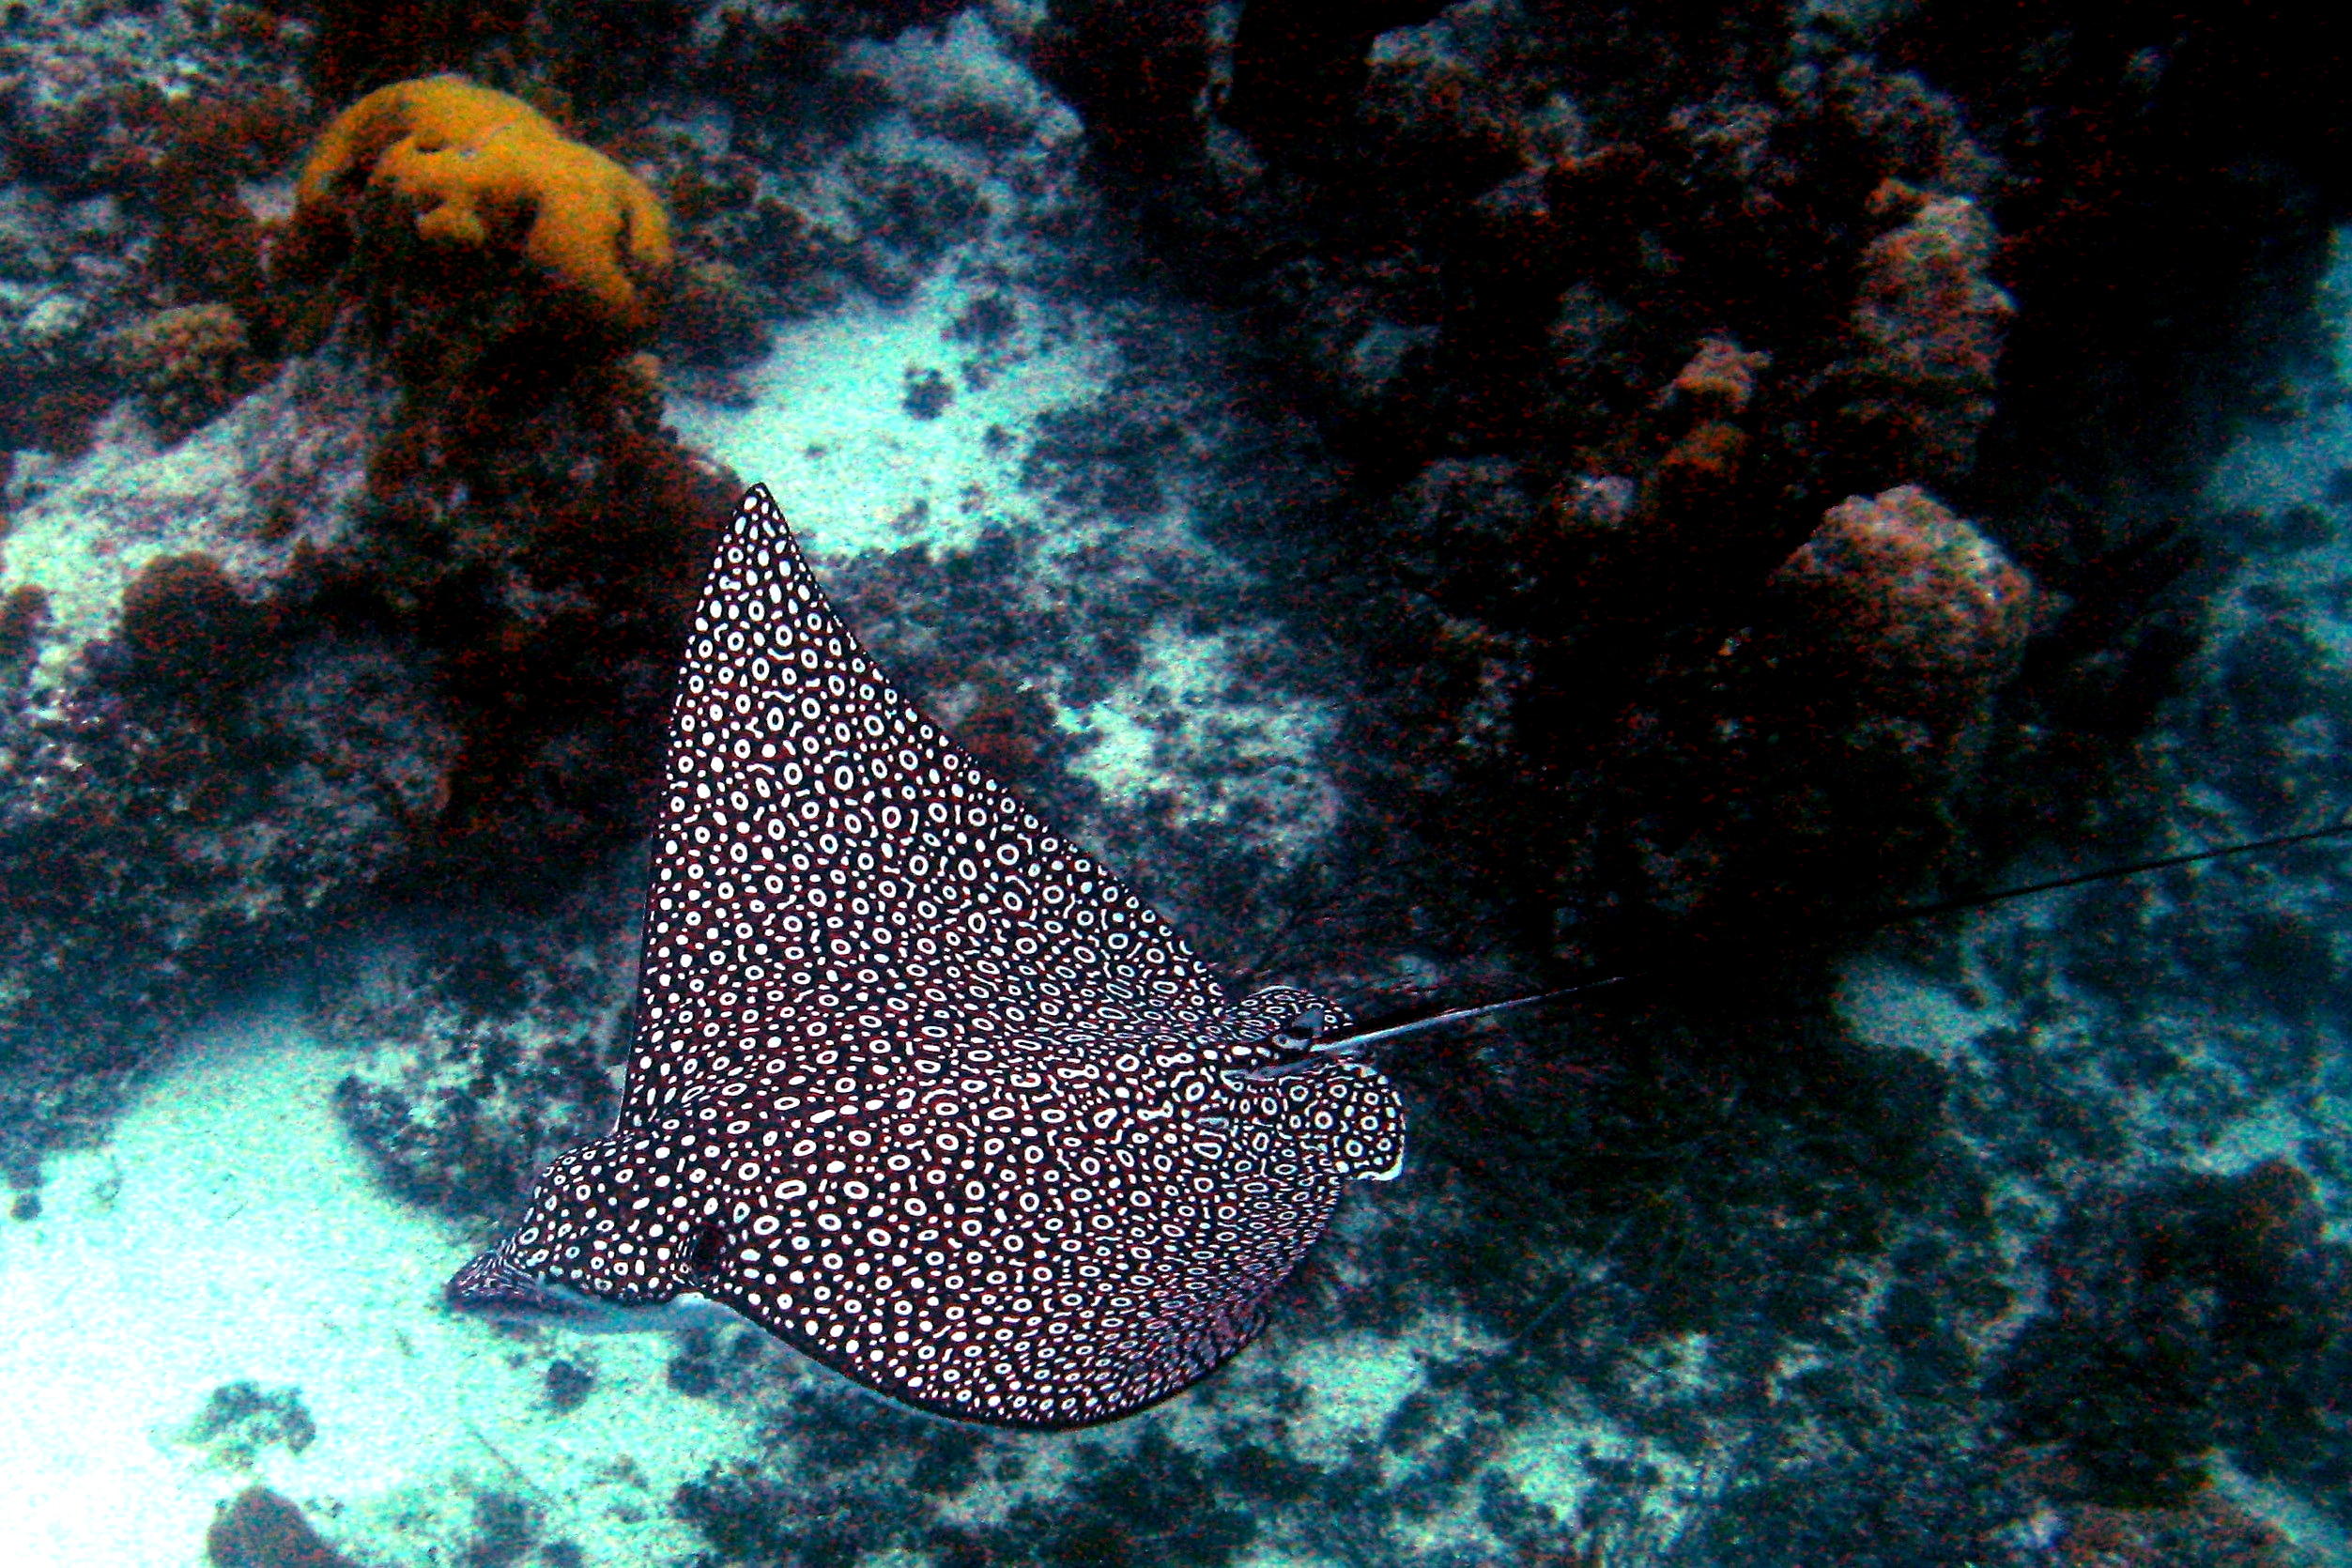 Spotted eagle ray coloring pages - When The Camouflage Fails Spotted Eagle Rays